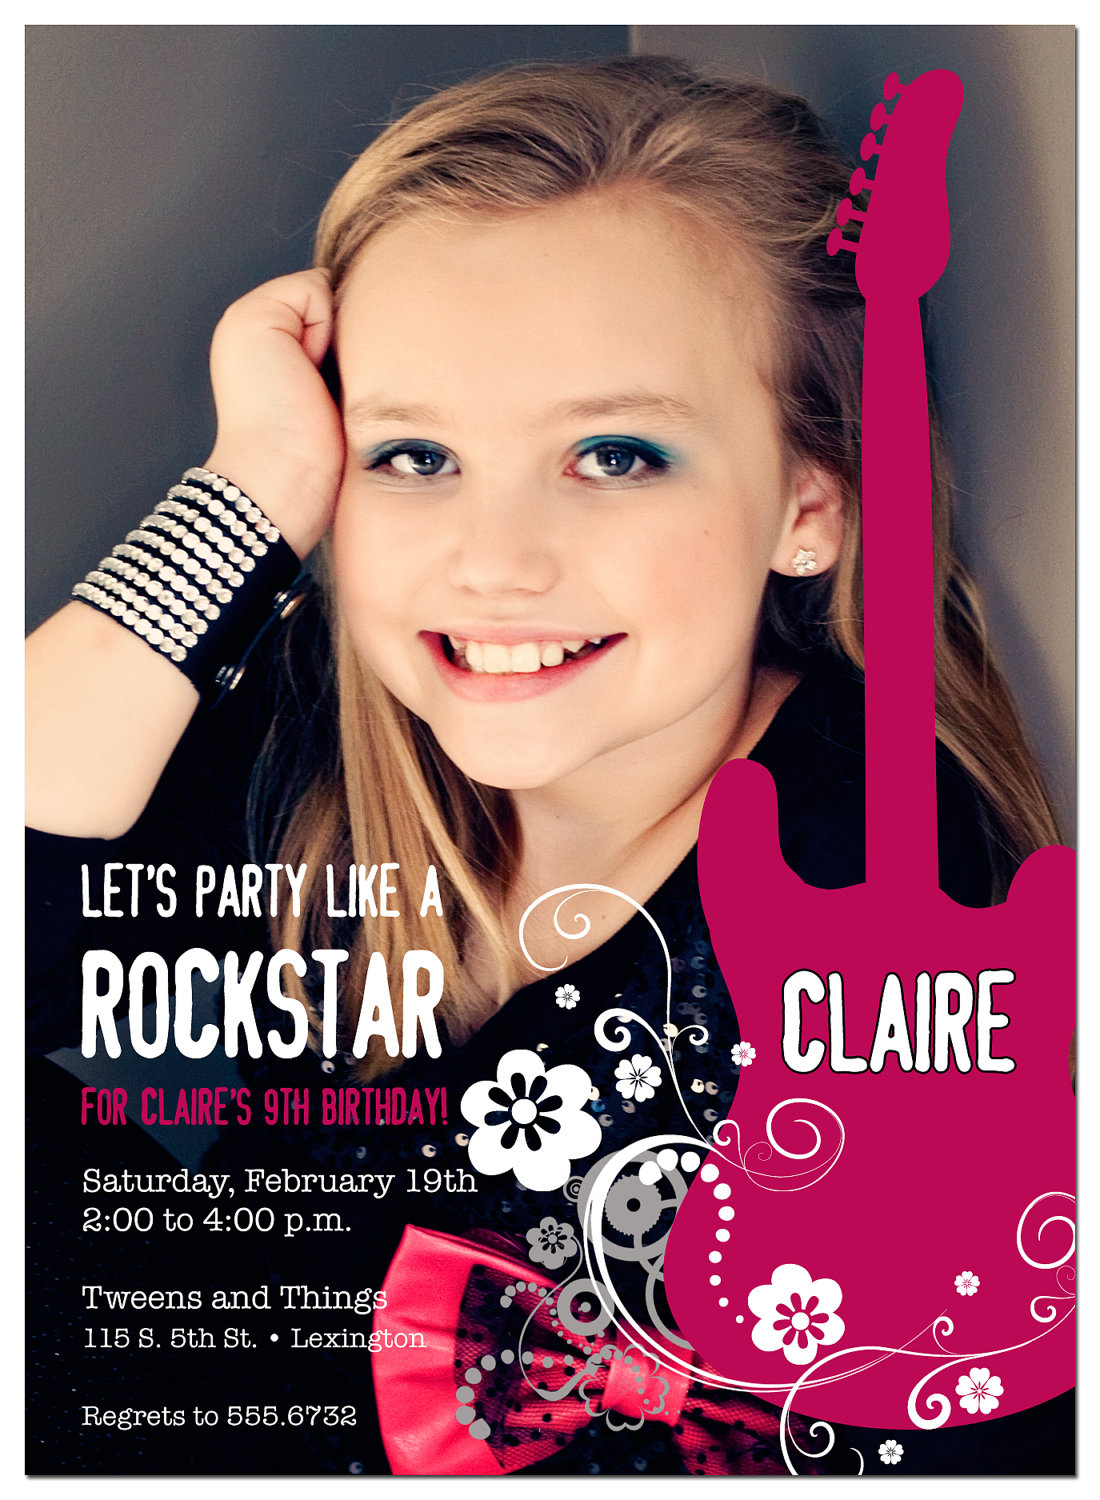 1000+ Images About Rock Star Party On Pinterest